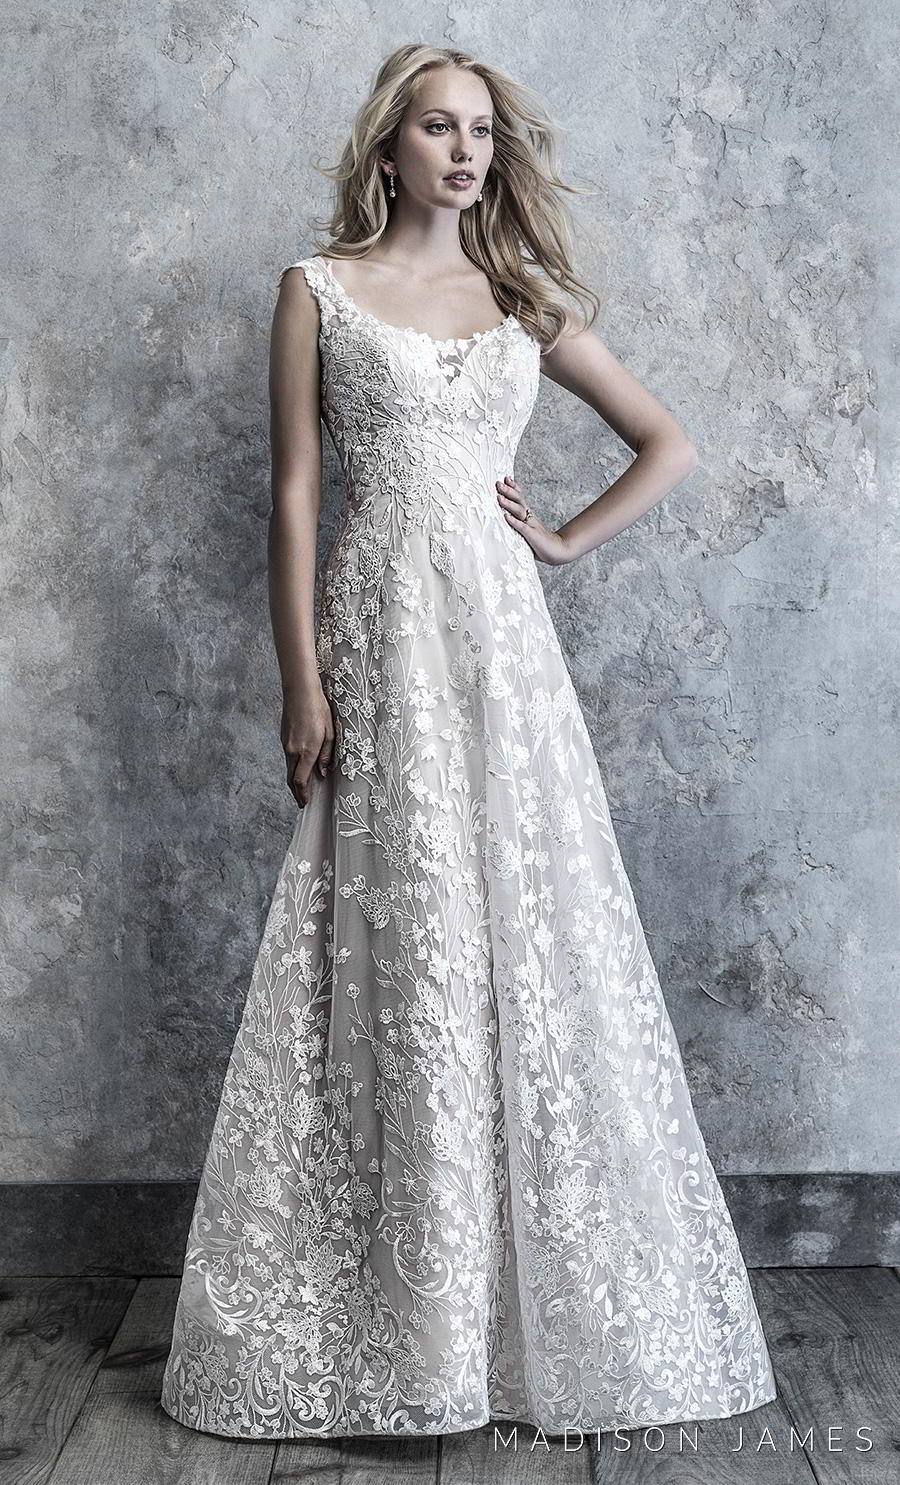 madison james 2019 bridal cap sleeves scoop neckline full embellishment romantic a line wedding dress backless scoop back chapel train (519) mv